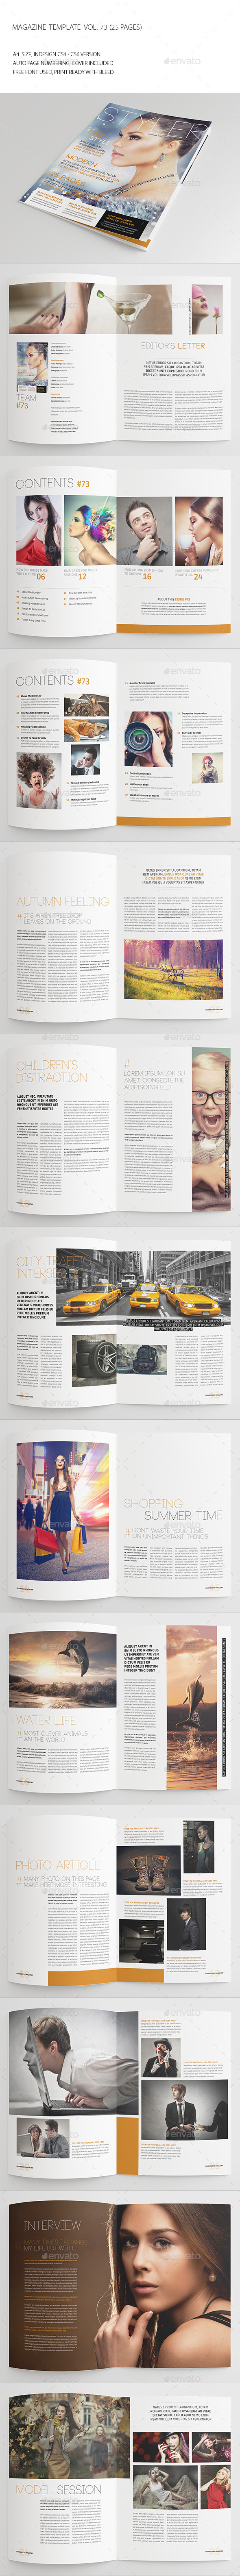 GraphicRiver 25 Pages Universal Magazine Vol73 8848587